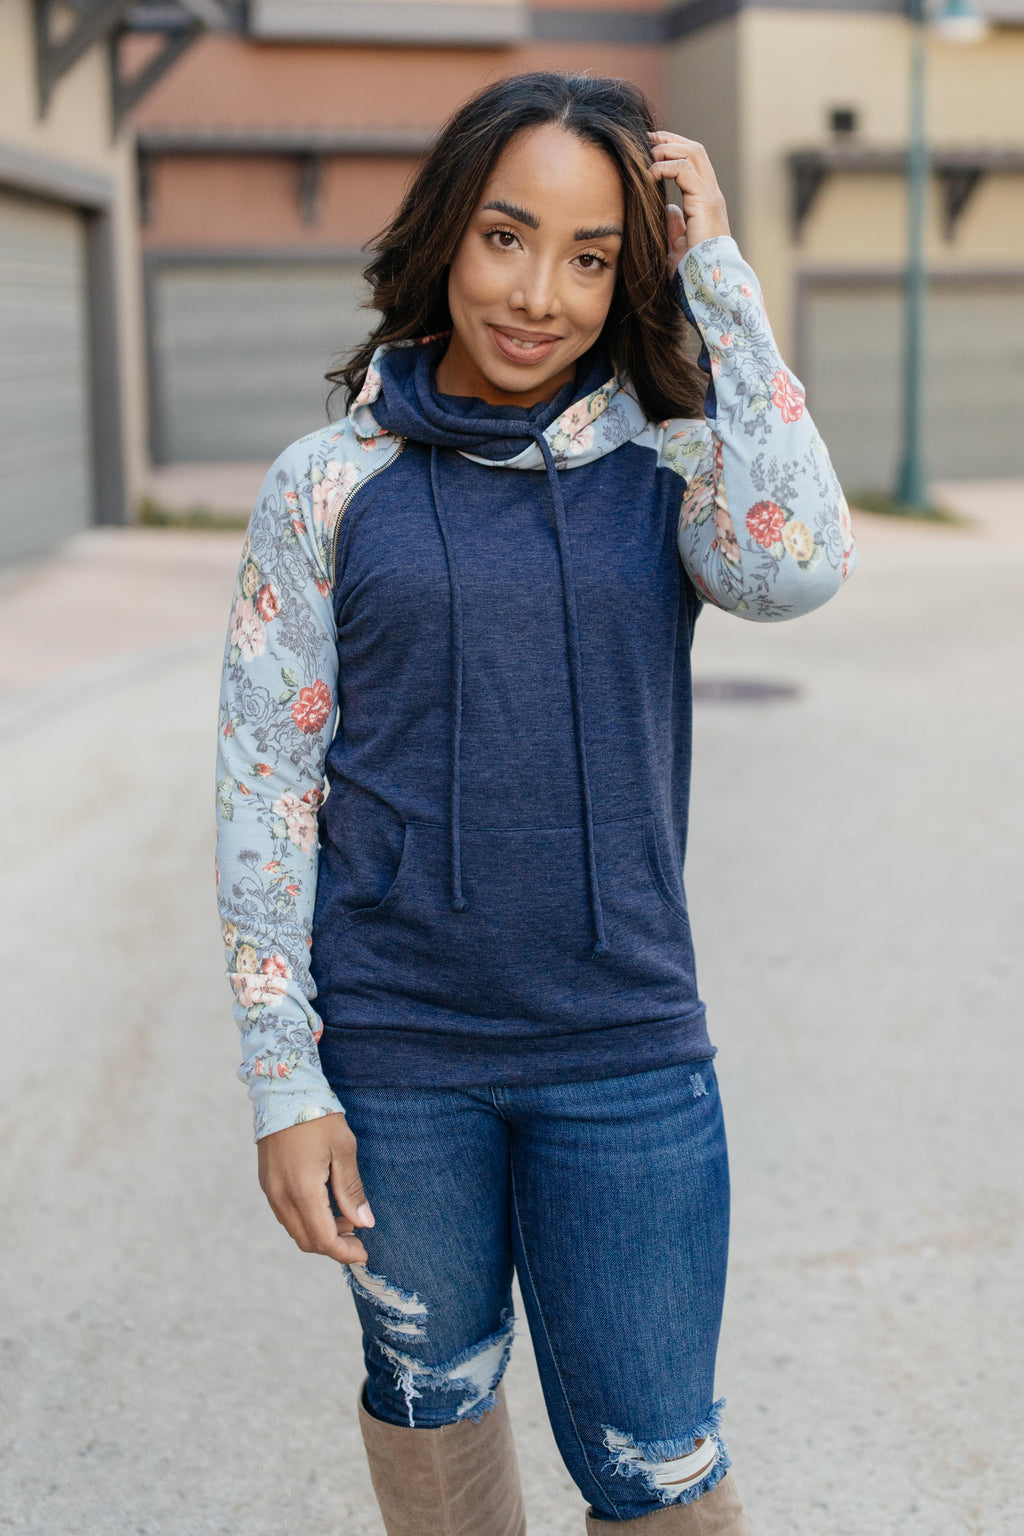 Bits Of Floral And A Zipper Hoodie-11-30-2020, 1XL, 2XL, 3XL, CMDB2020, Group A, Group B, Group C, Large, Medium, Small, Tops, XL, XS-Womens Artisan USA American Made Clothing Accessories